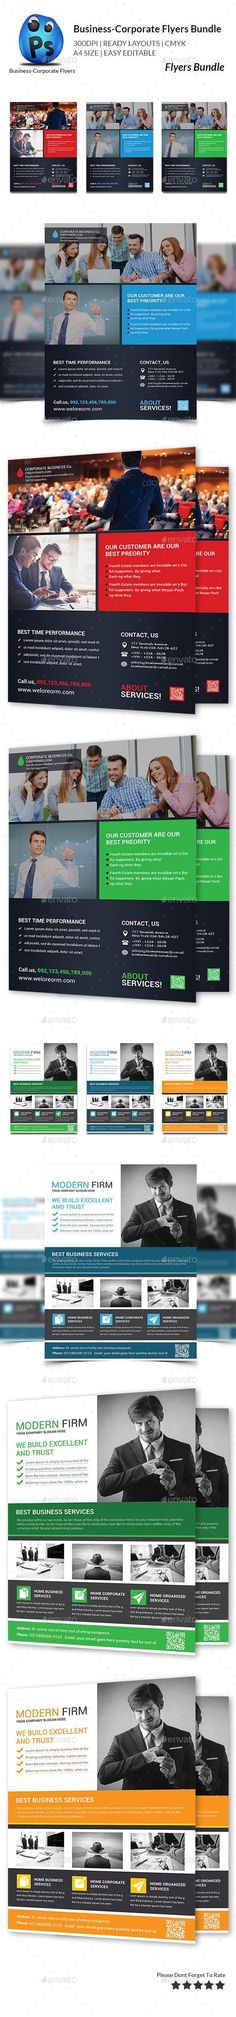 Buy Business Flyer Template Bundle by afjamaal on GraphicRiver. This flyer is made in photoshop the files included are help file and photoshop psd'. Corporate Flyer, Corporate Business, Business Branding, Business Flyers, Psd Flyer Templates, Business Flyer Templates, Print Templates, Flyer And Poster Design, Flyer Design